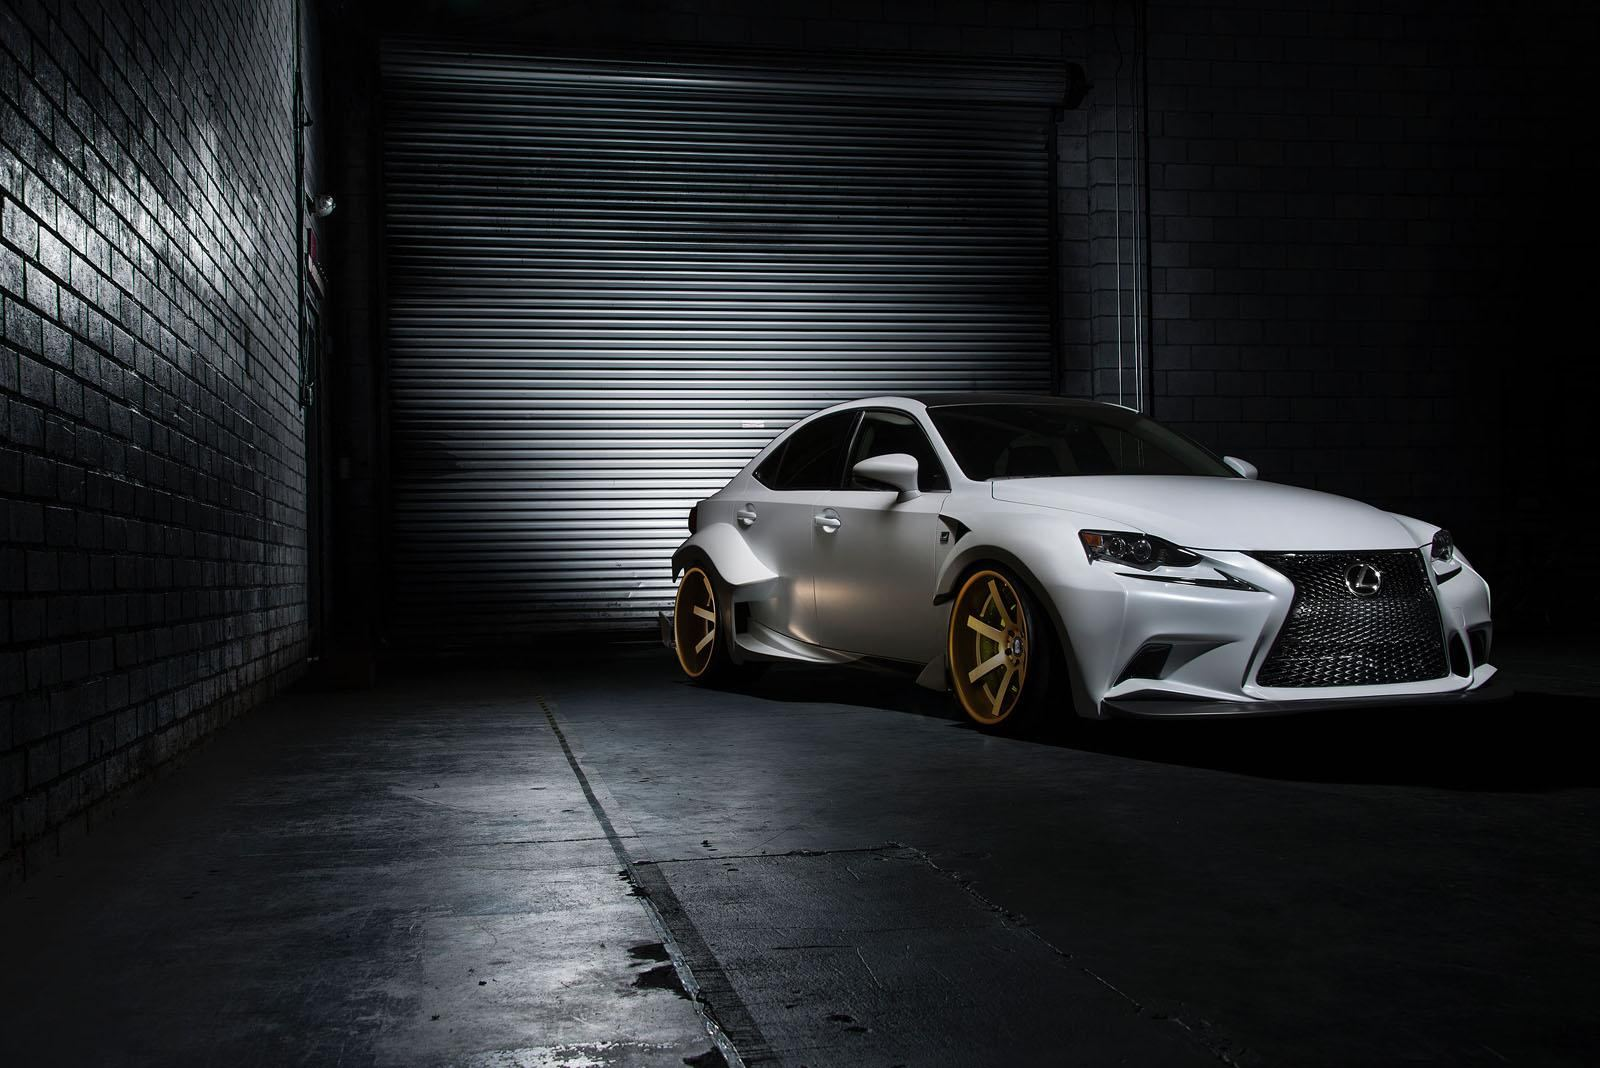 2014 Lexus Is350 F Sport Specs >> Lexus RC F Wallpaper HD 44354 1600x1068 px ~ HDWallSource.com